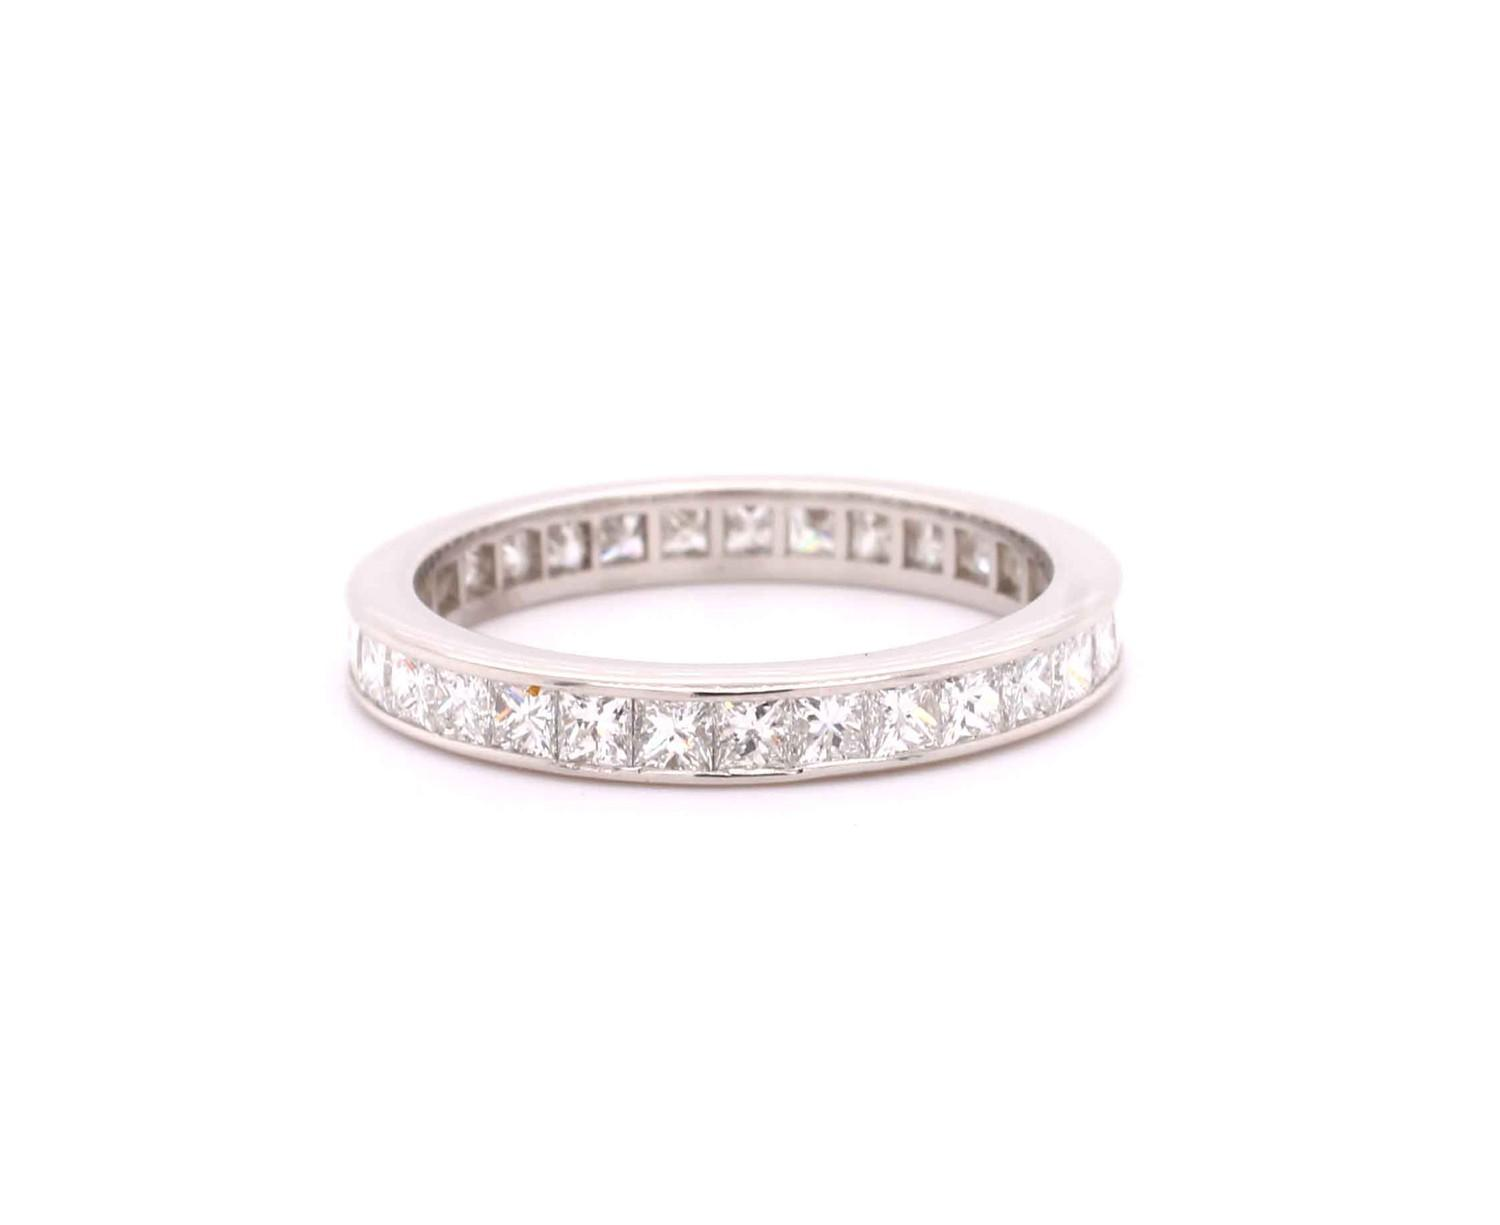 A Princess cut diamond eternity ring mounted in platinum by Tiffany & Co. Contemporary. Signed - Image 3 of 6